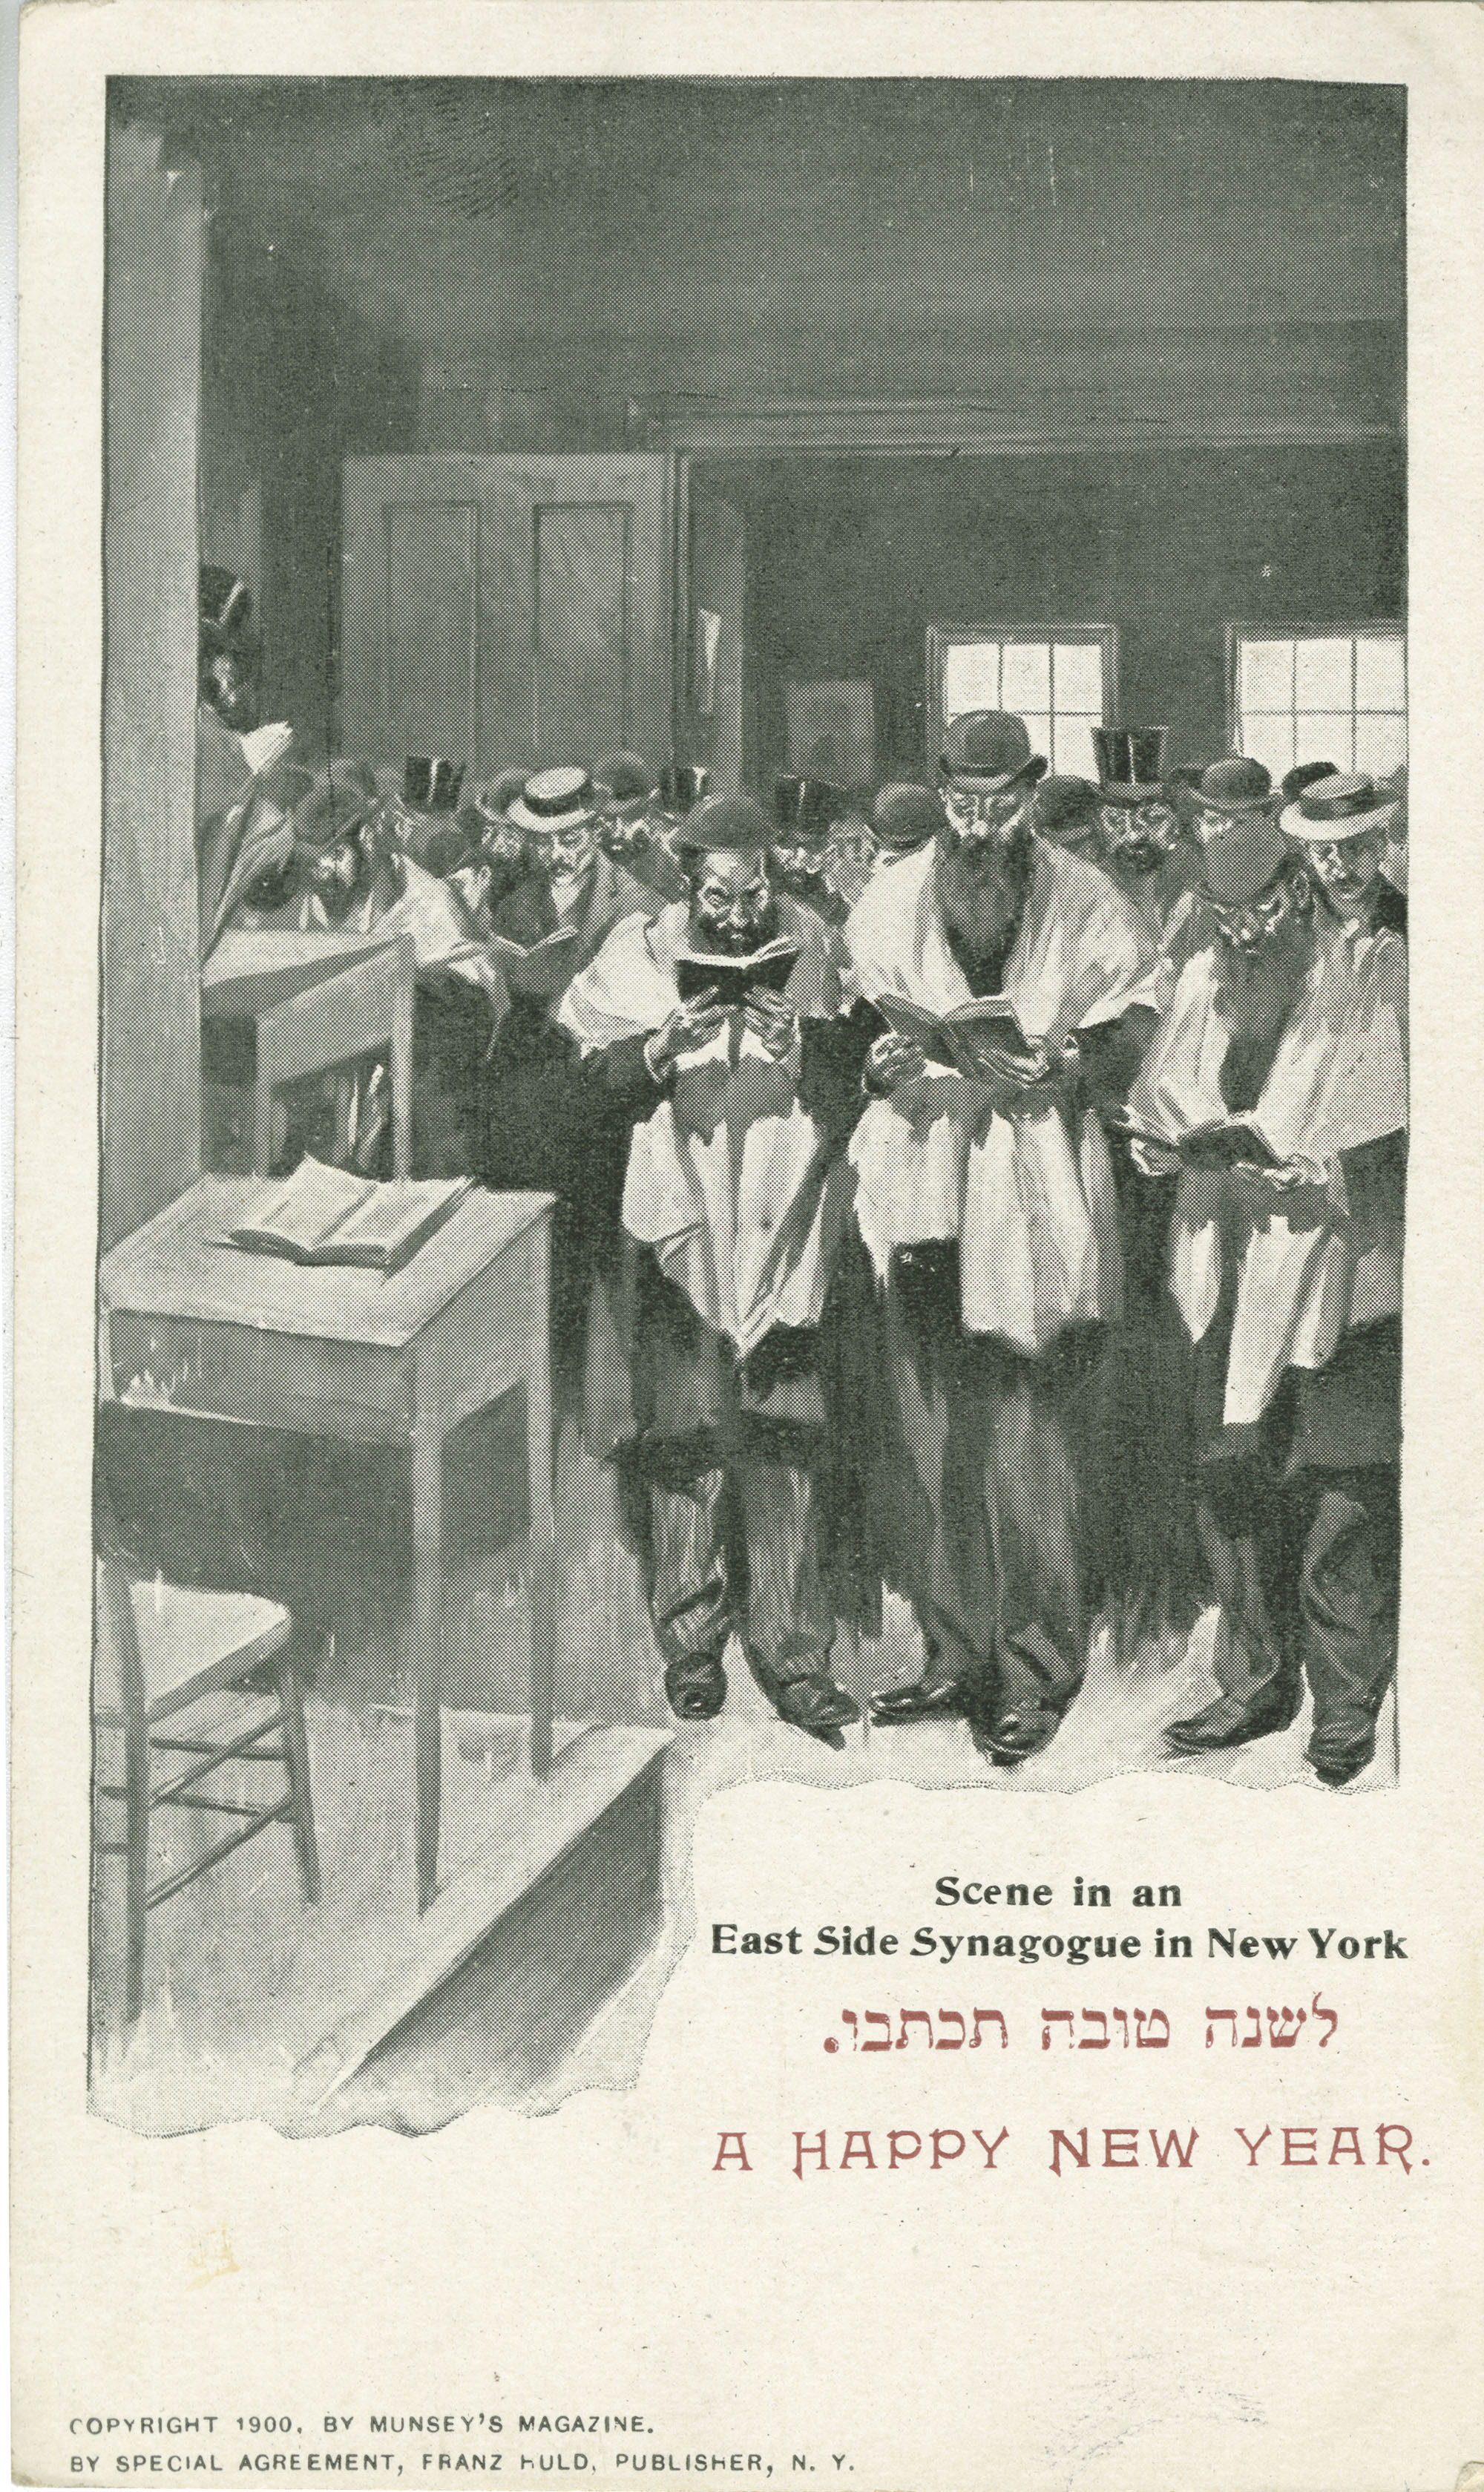 Scene in an East Side Synagogue in New York